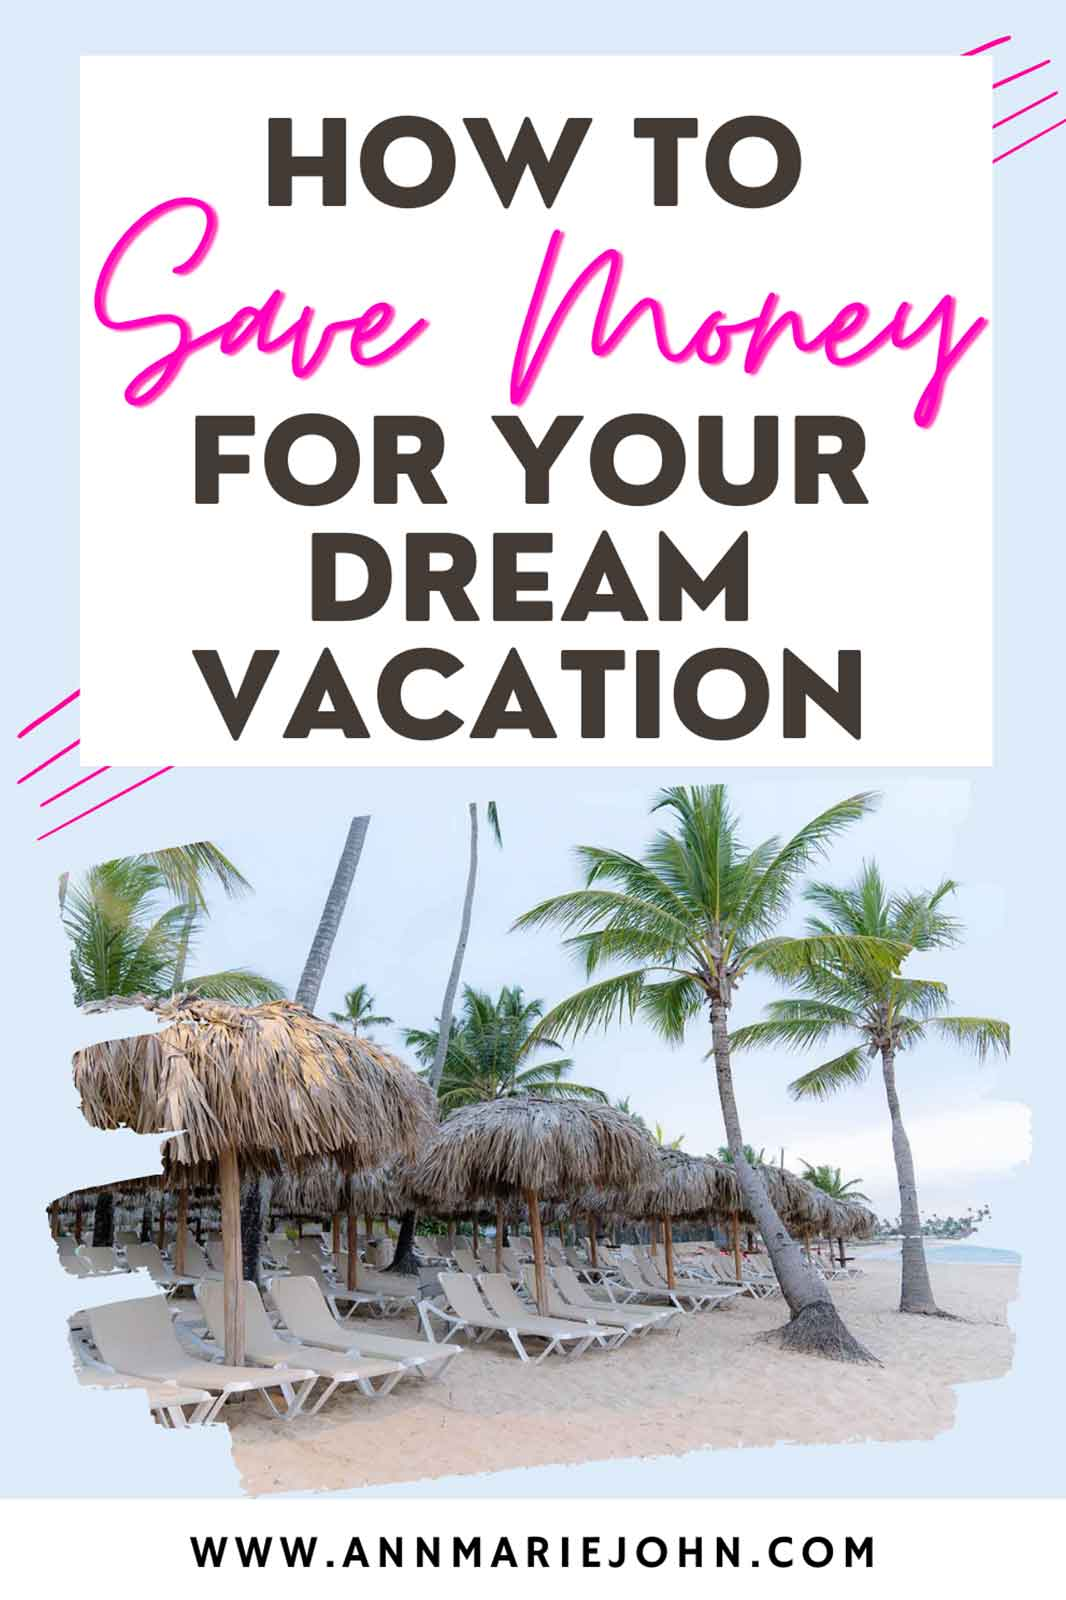 How to Save Money to Turn Your Dream Vacation Into Reality